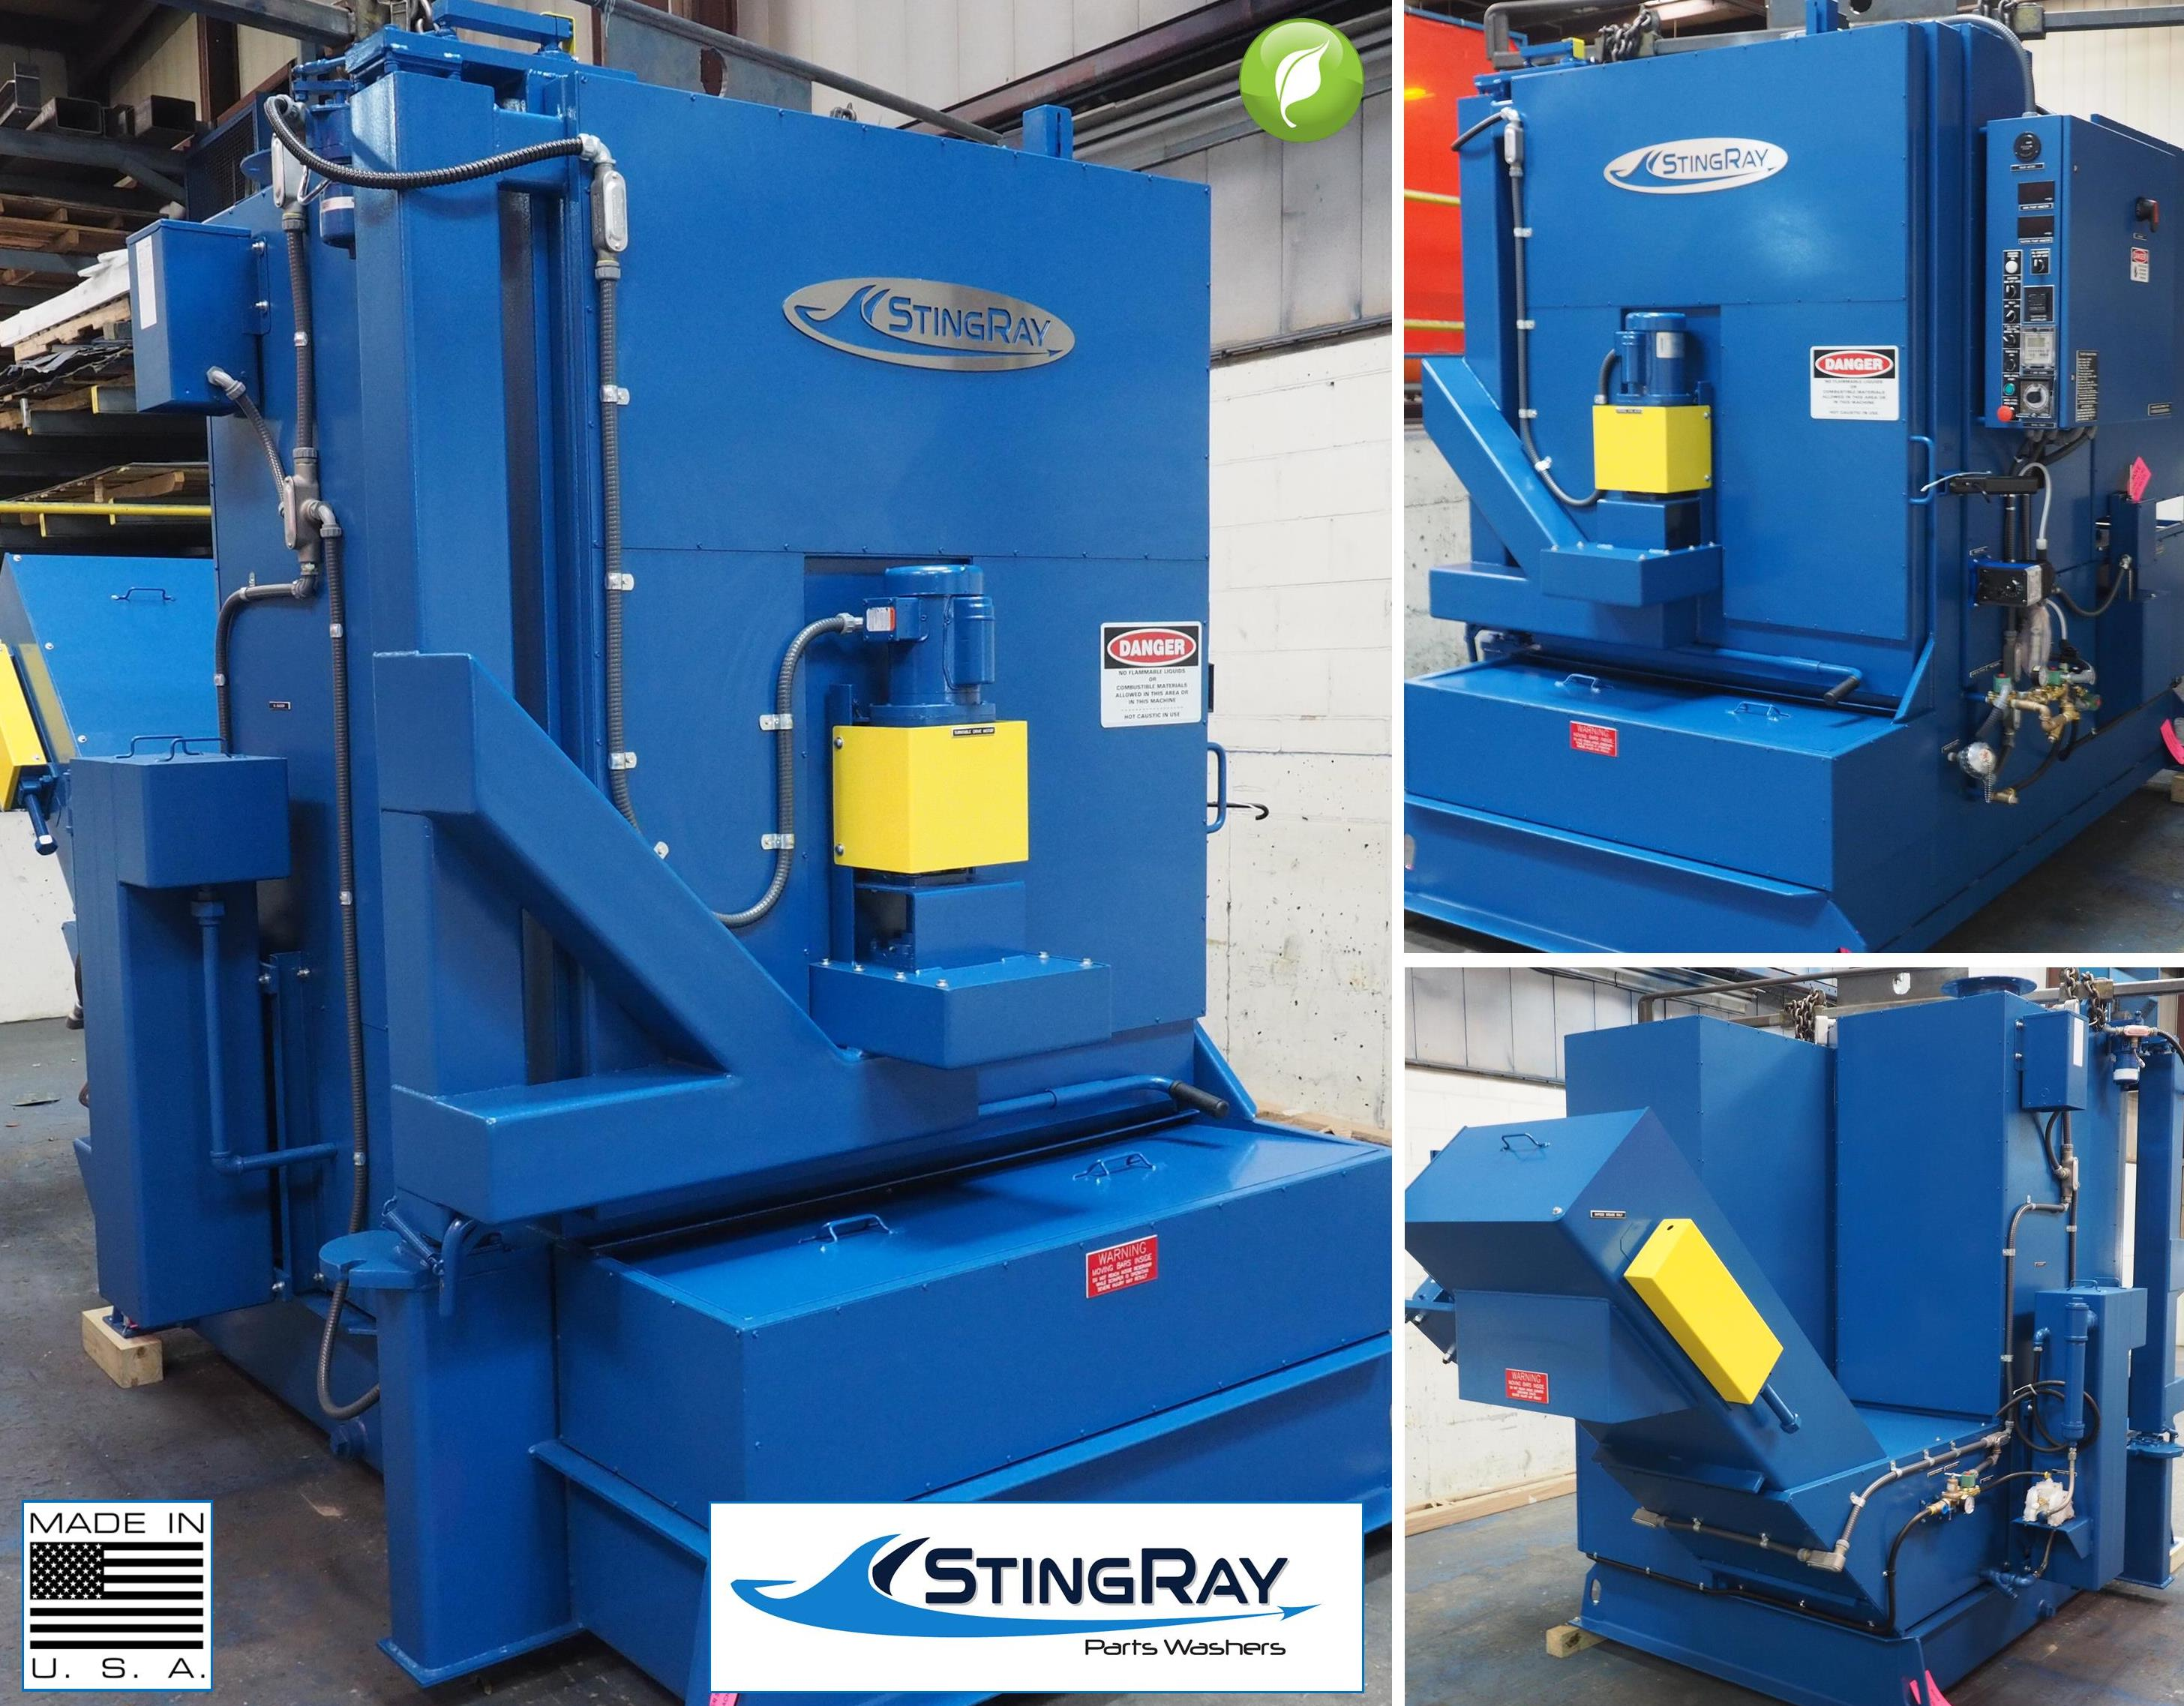 StingRay Industrial Parts Washer for Electric Motor Components